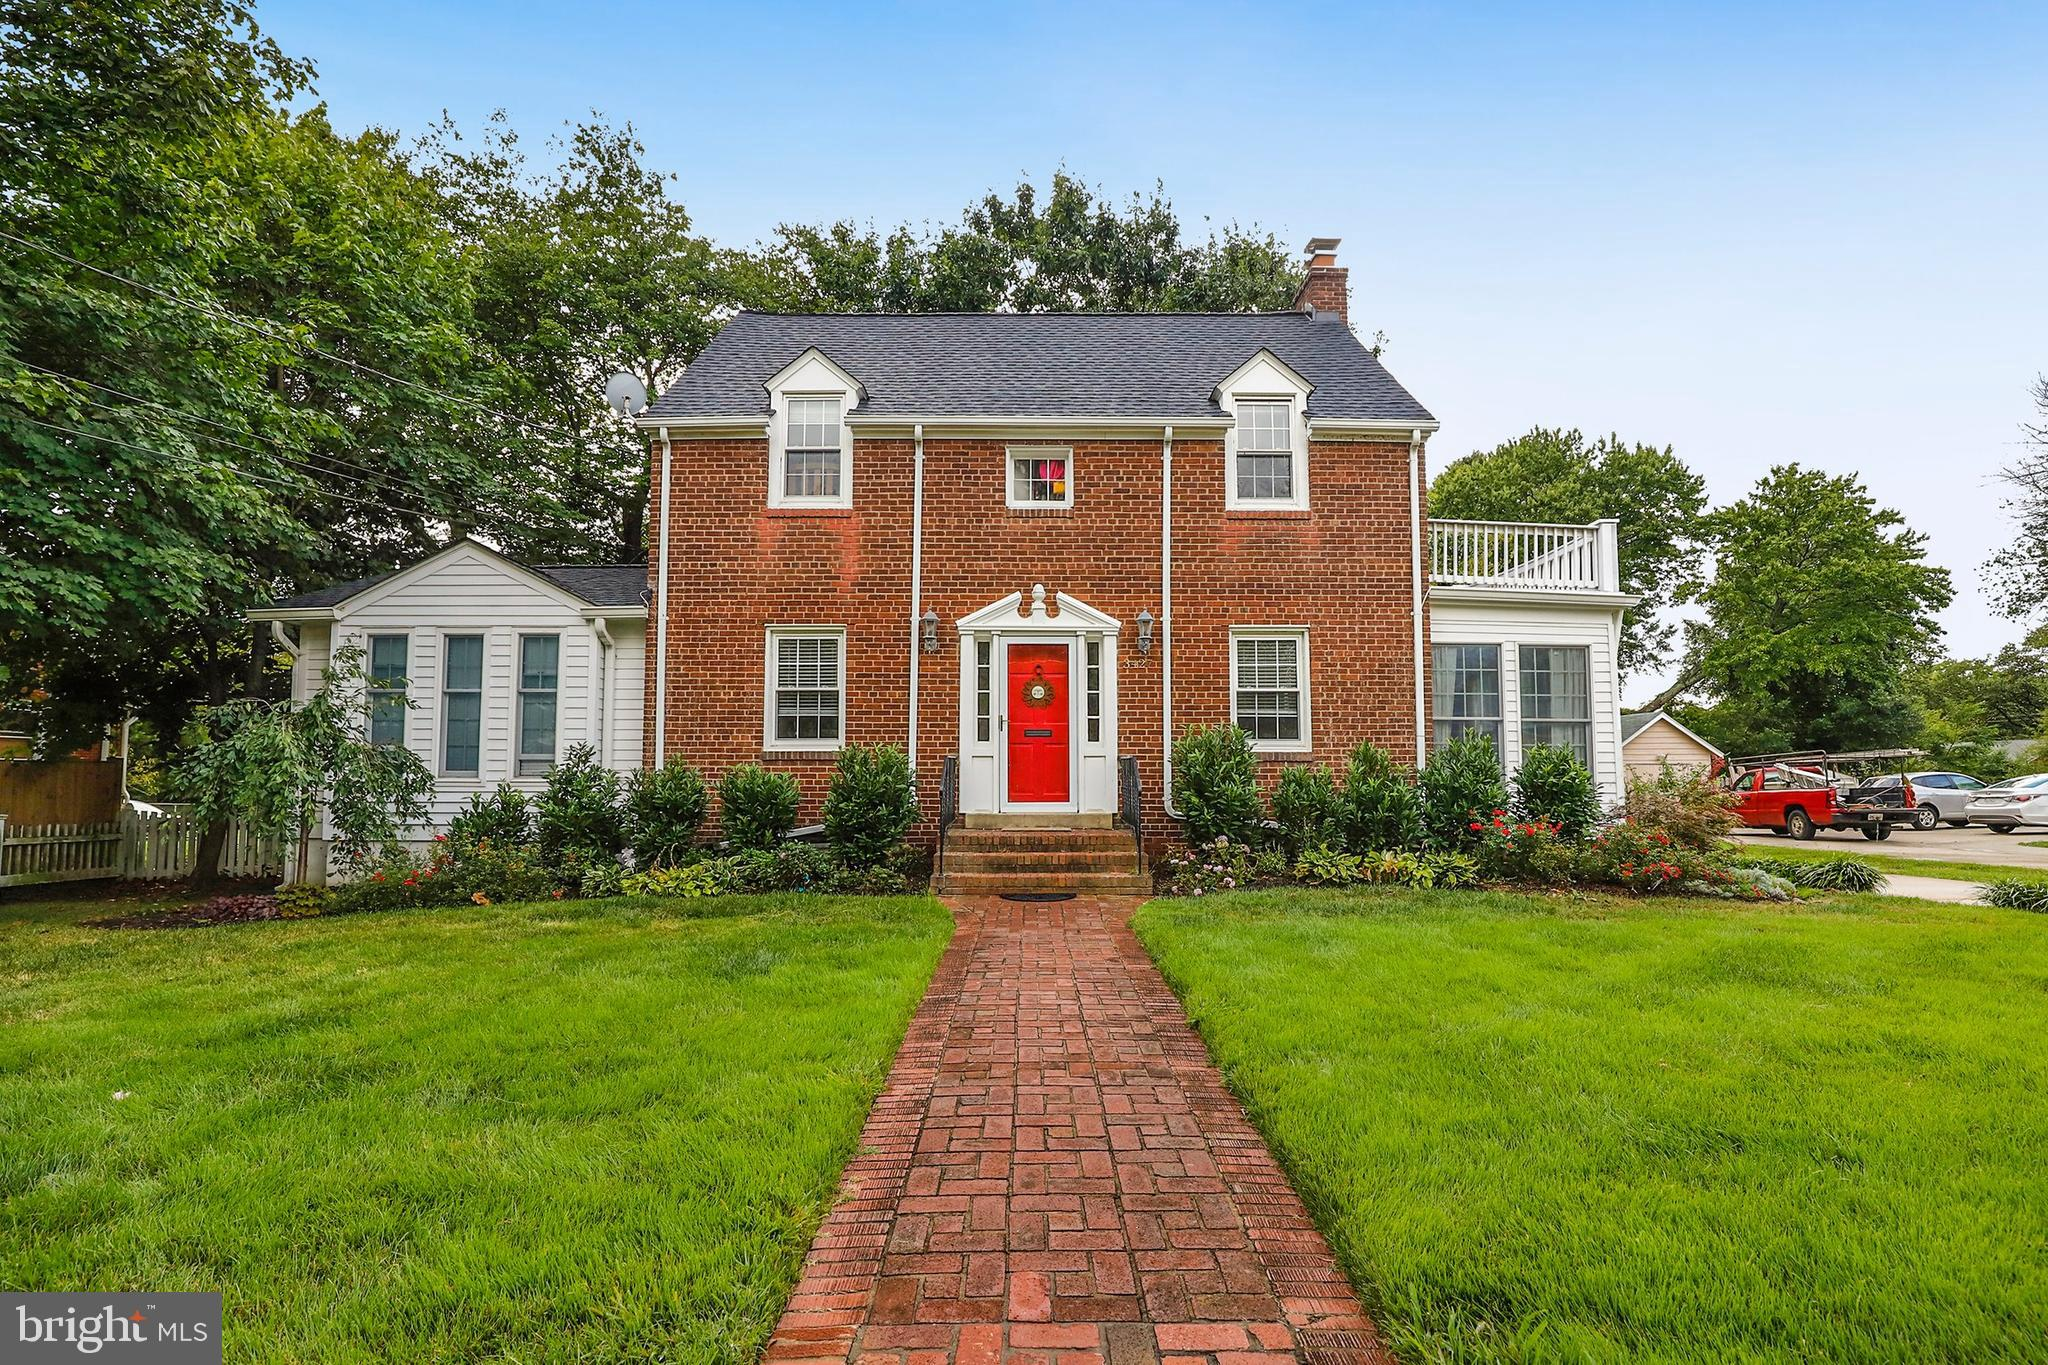 Timeless brick colonial on picturesque .44 acre lot. Artfully crafted with dramatic lighting with medallion accents, crown molding, built-in book shelves and gorgeous original hard wood floors! Pride of ownership is evident, with new kitchen appliances, new sump pump, new water heater, new basement flooring and new roof as of August 2019. The house has been expanded with light-filled additions on each side, keeping true to the classic architecture - one side boasting a main level master bedroom and scrumptious en suite master bath and the other, an adorable sun room! The expansive, level fenced back yard has a deck to host BBQ's and parties! Easy commute to DC, Pentagon, Amazon HQ2 and Fort Belvoir!